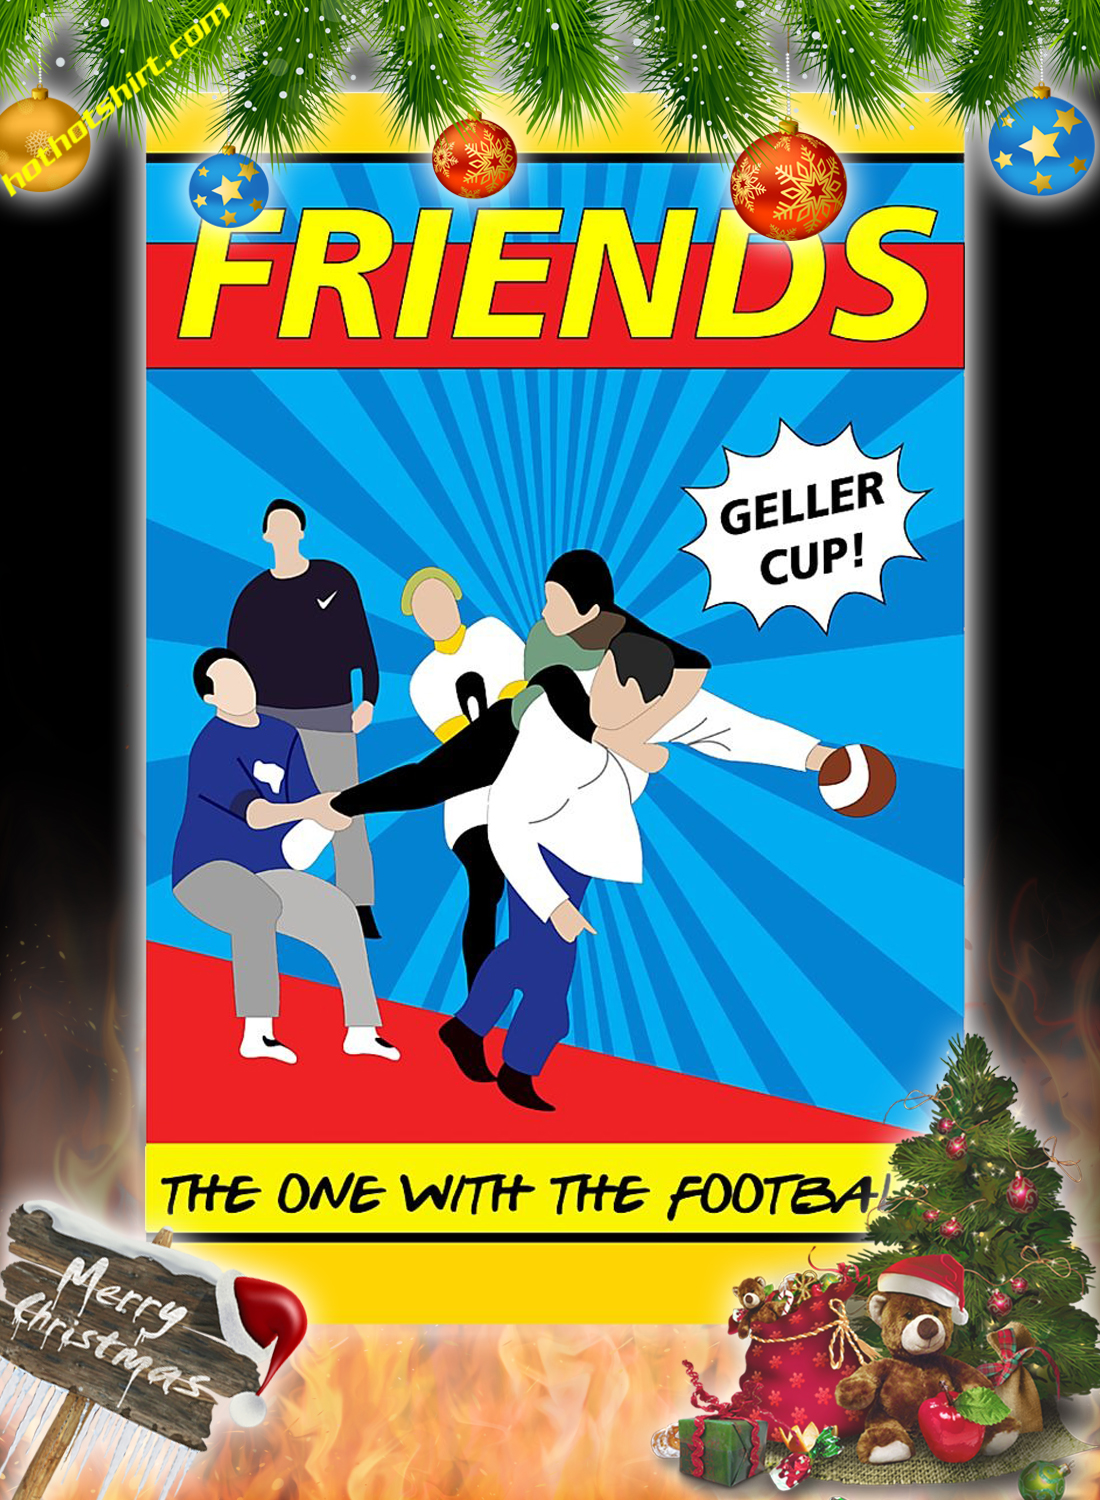 Friends the one with the football poster 2